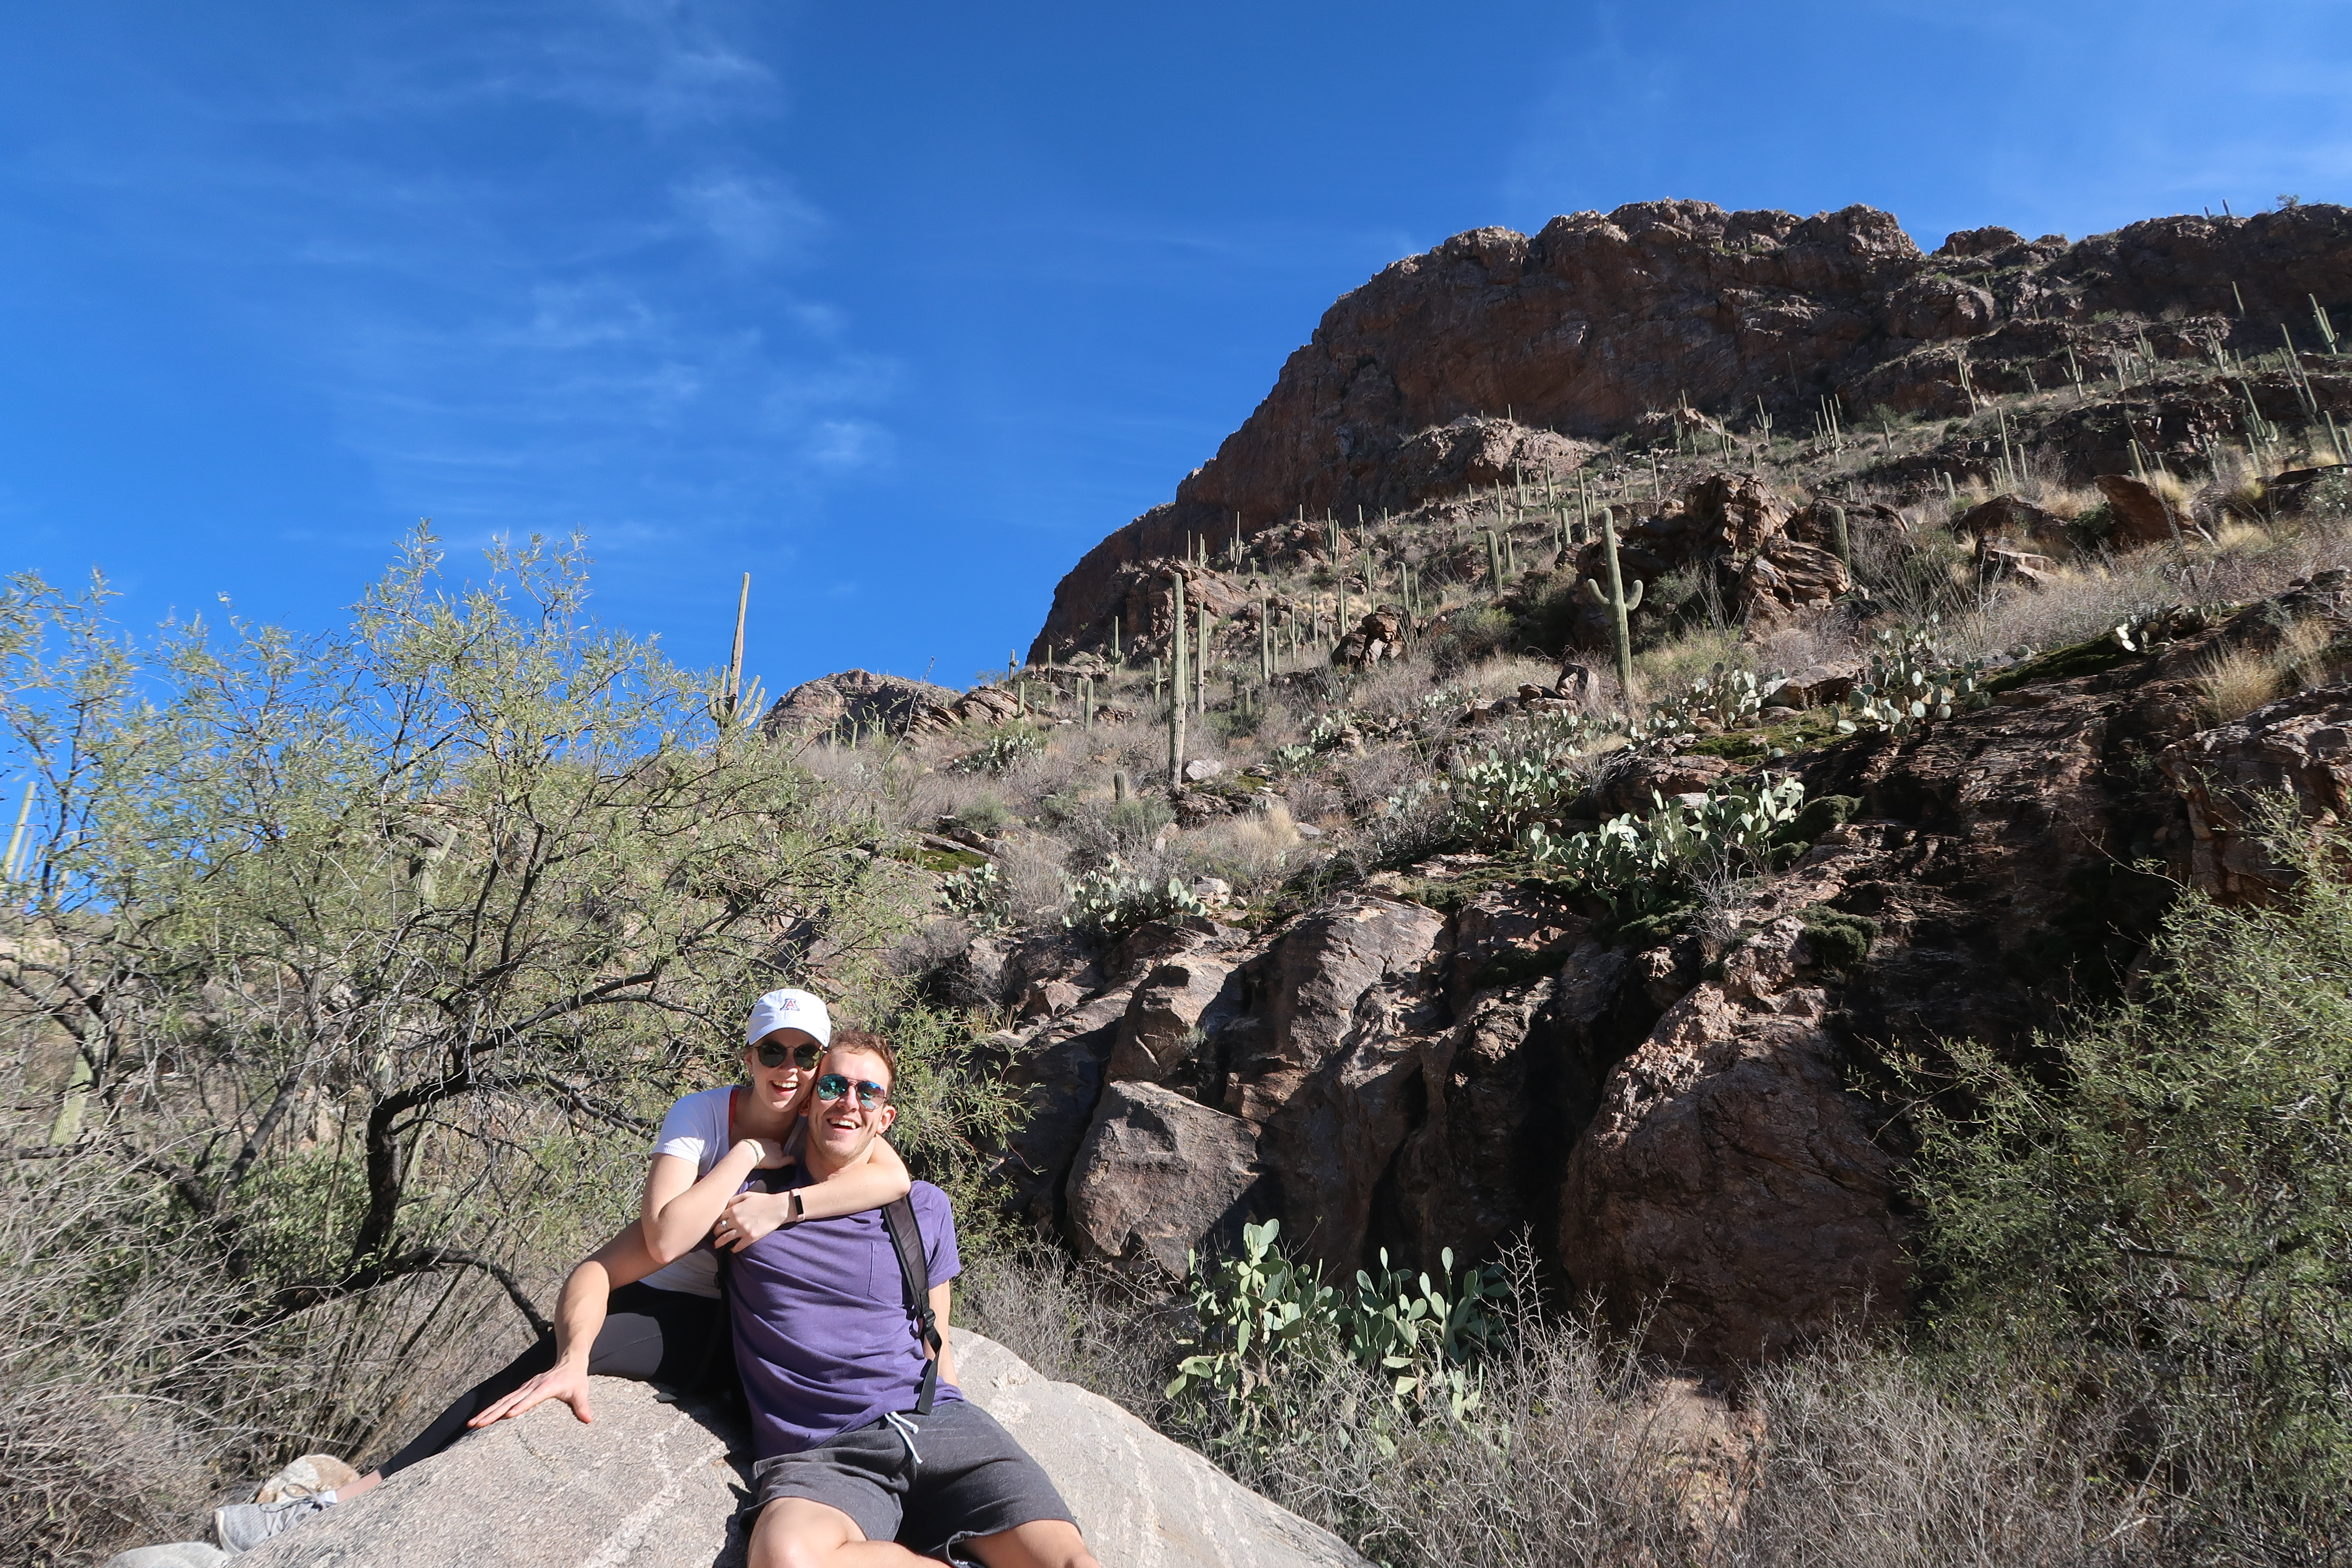 posing on a giant rock in pima canyon